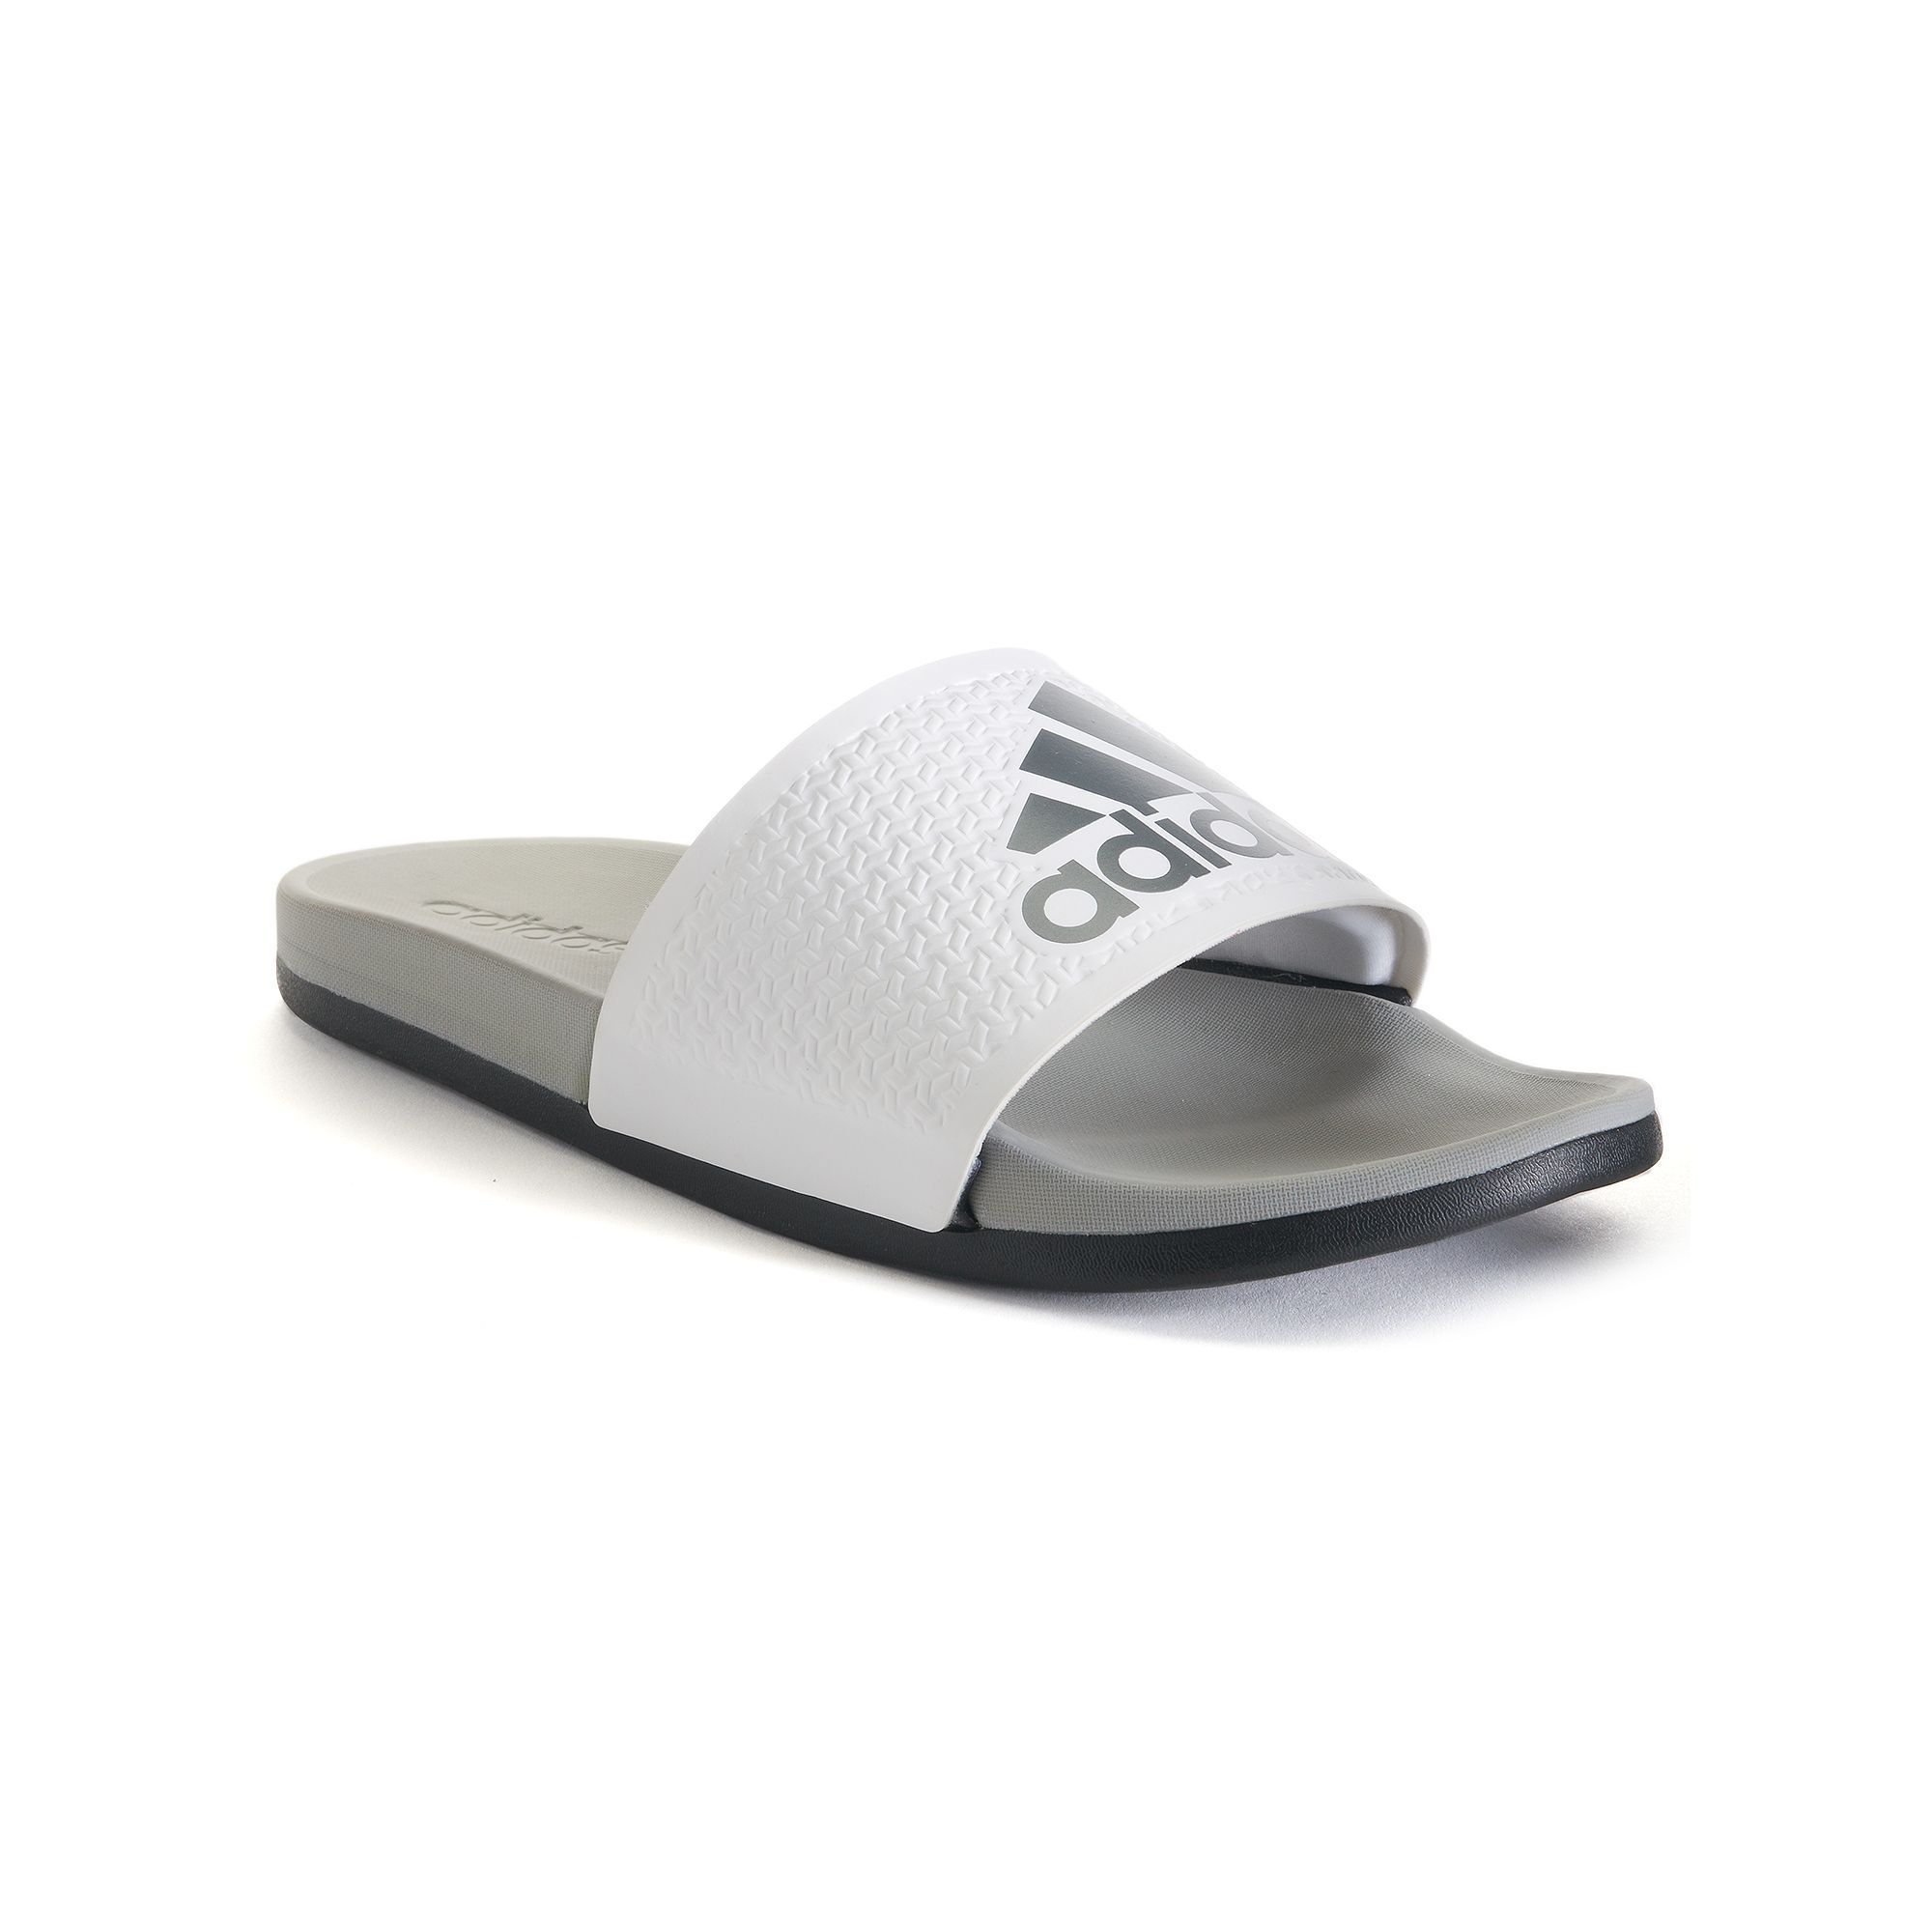 24b53ba6922ae1 adidas Adilette Supercloud Plus Men s Slide Sandals